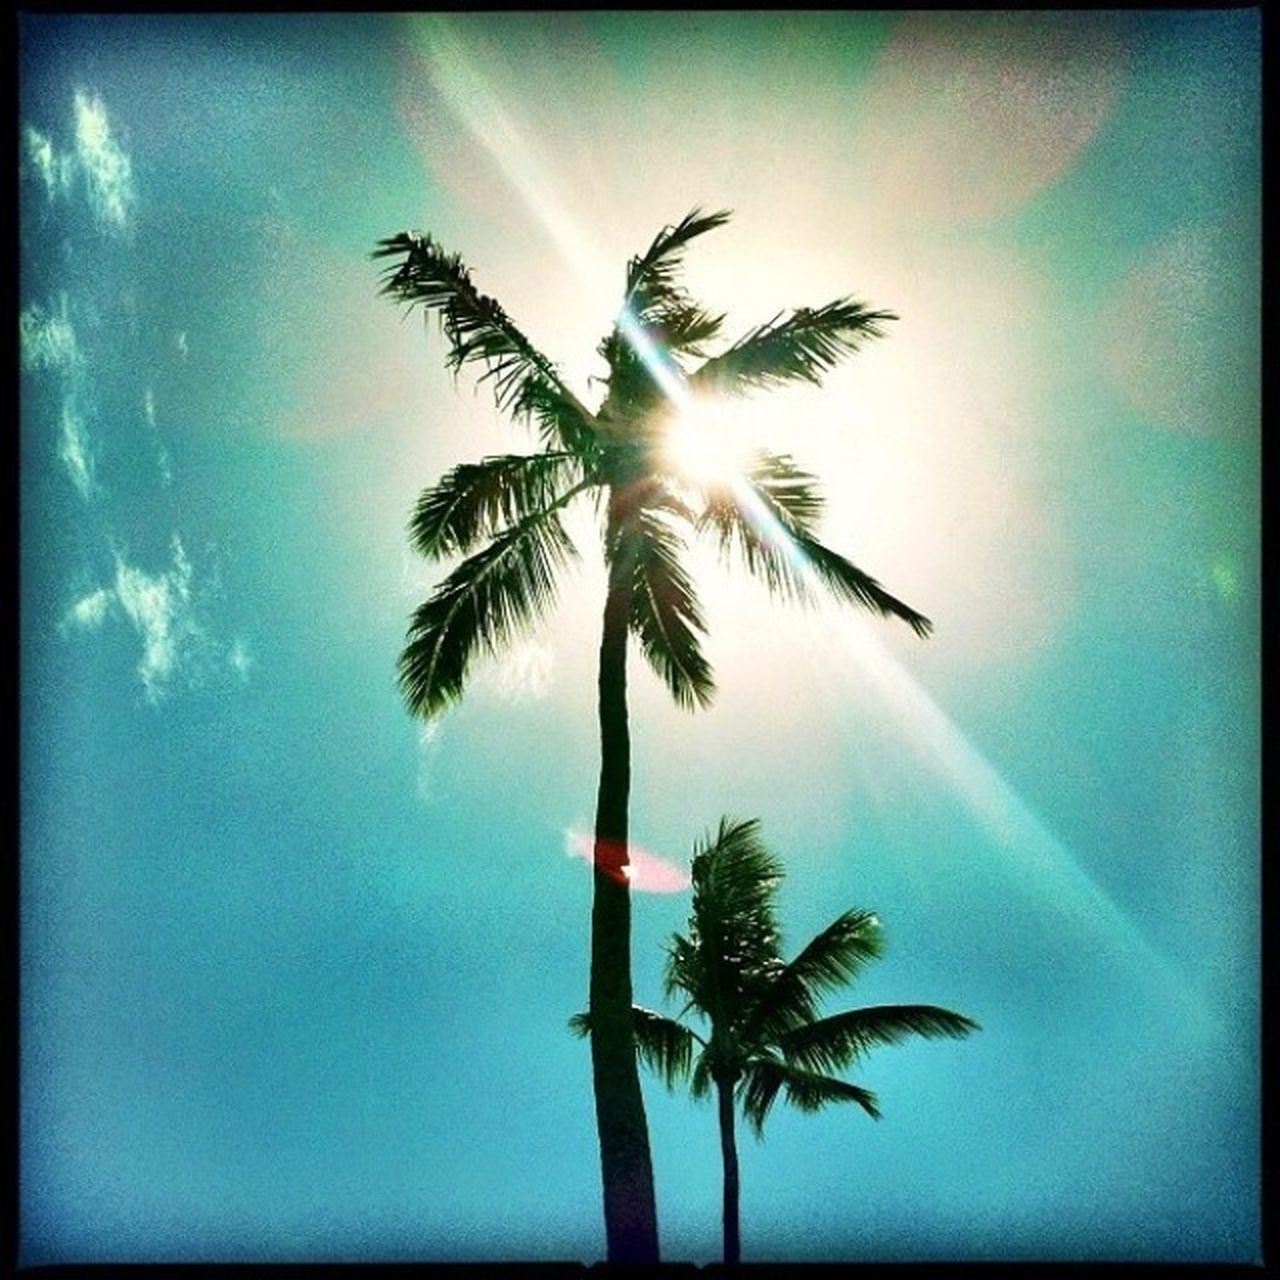 palm tree, low angle view, sky, tree, tree trunk, nature, no people, outdoors, growth, beauty in nature, palm frond, day, blue, scenics, close-up